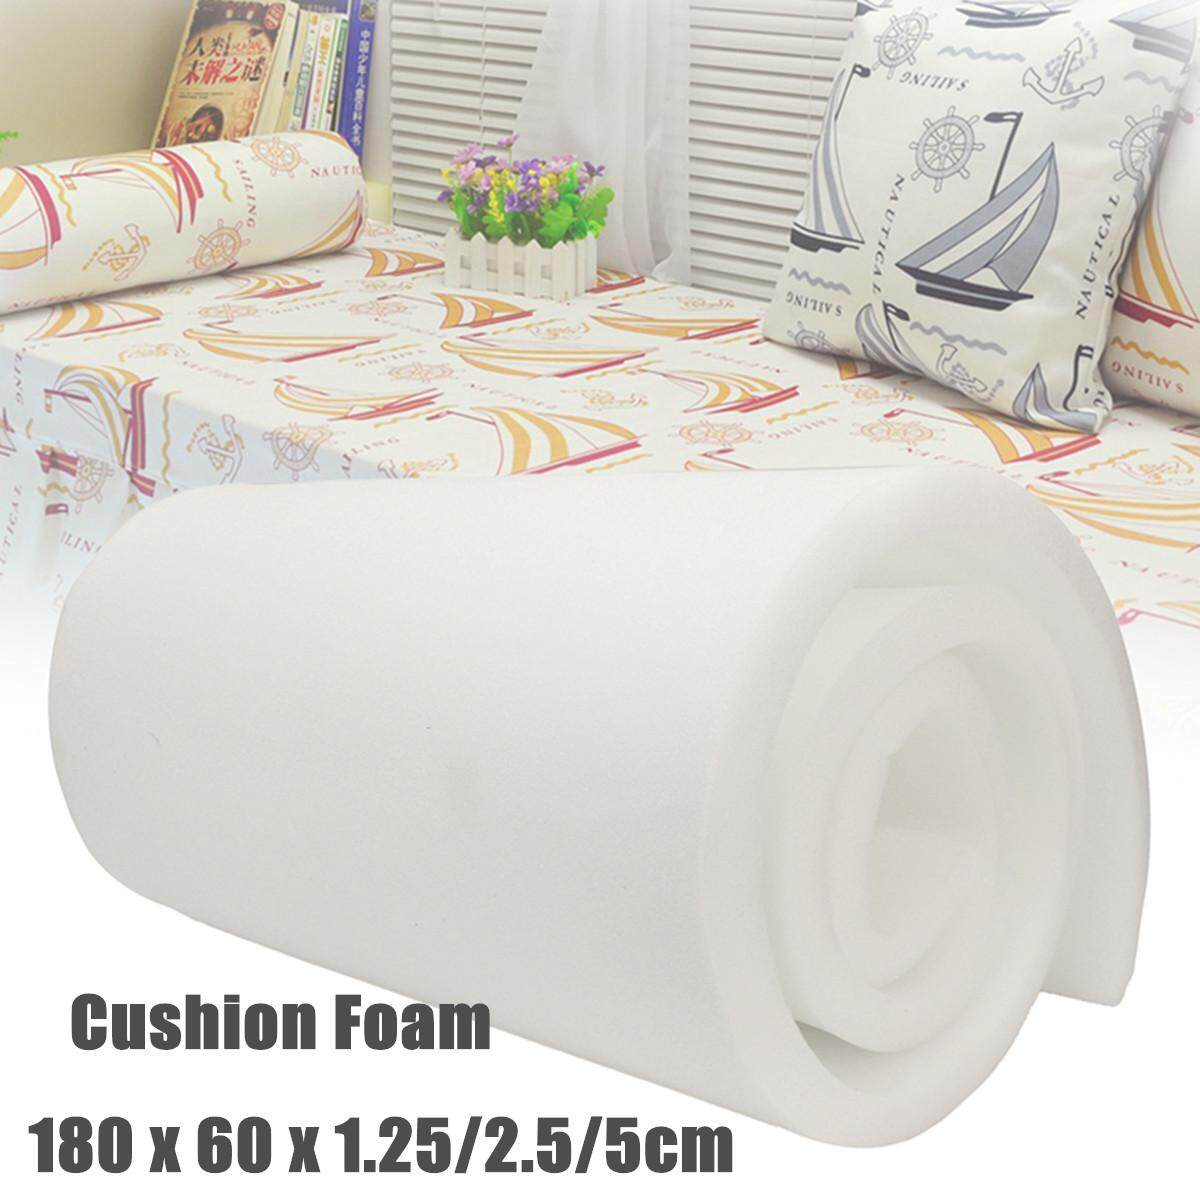 High Density Upholstery Foam Seat Cushion Replacement - 24 X 72  1.25cm By Moonbeam.